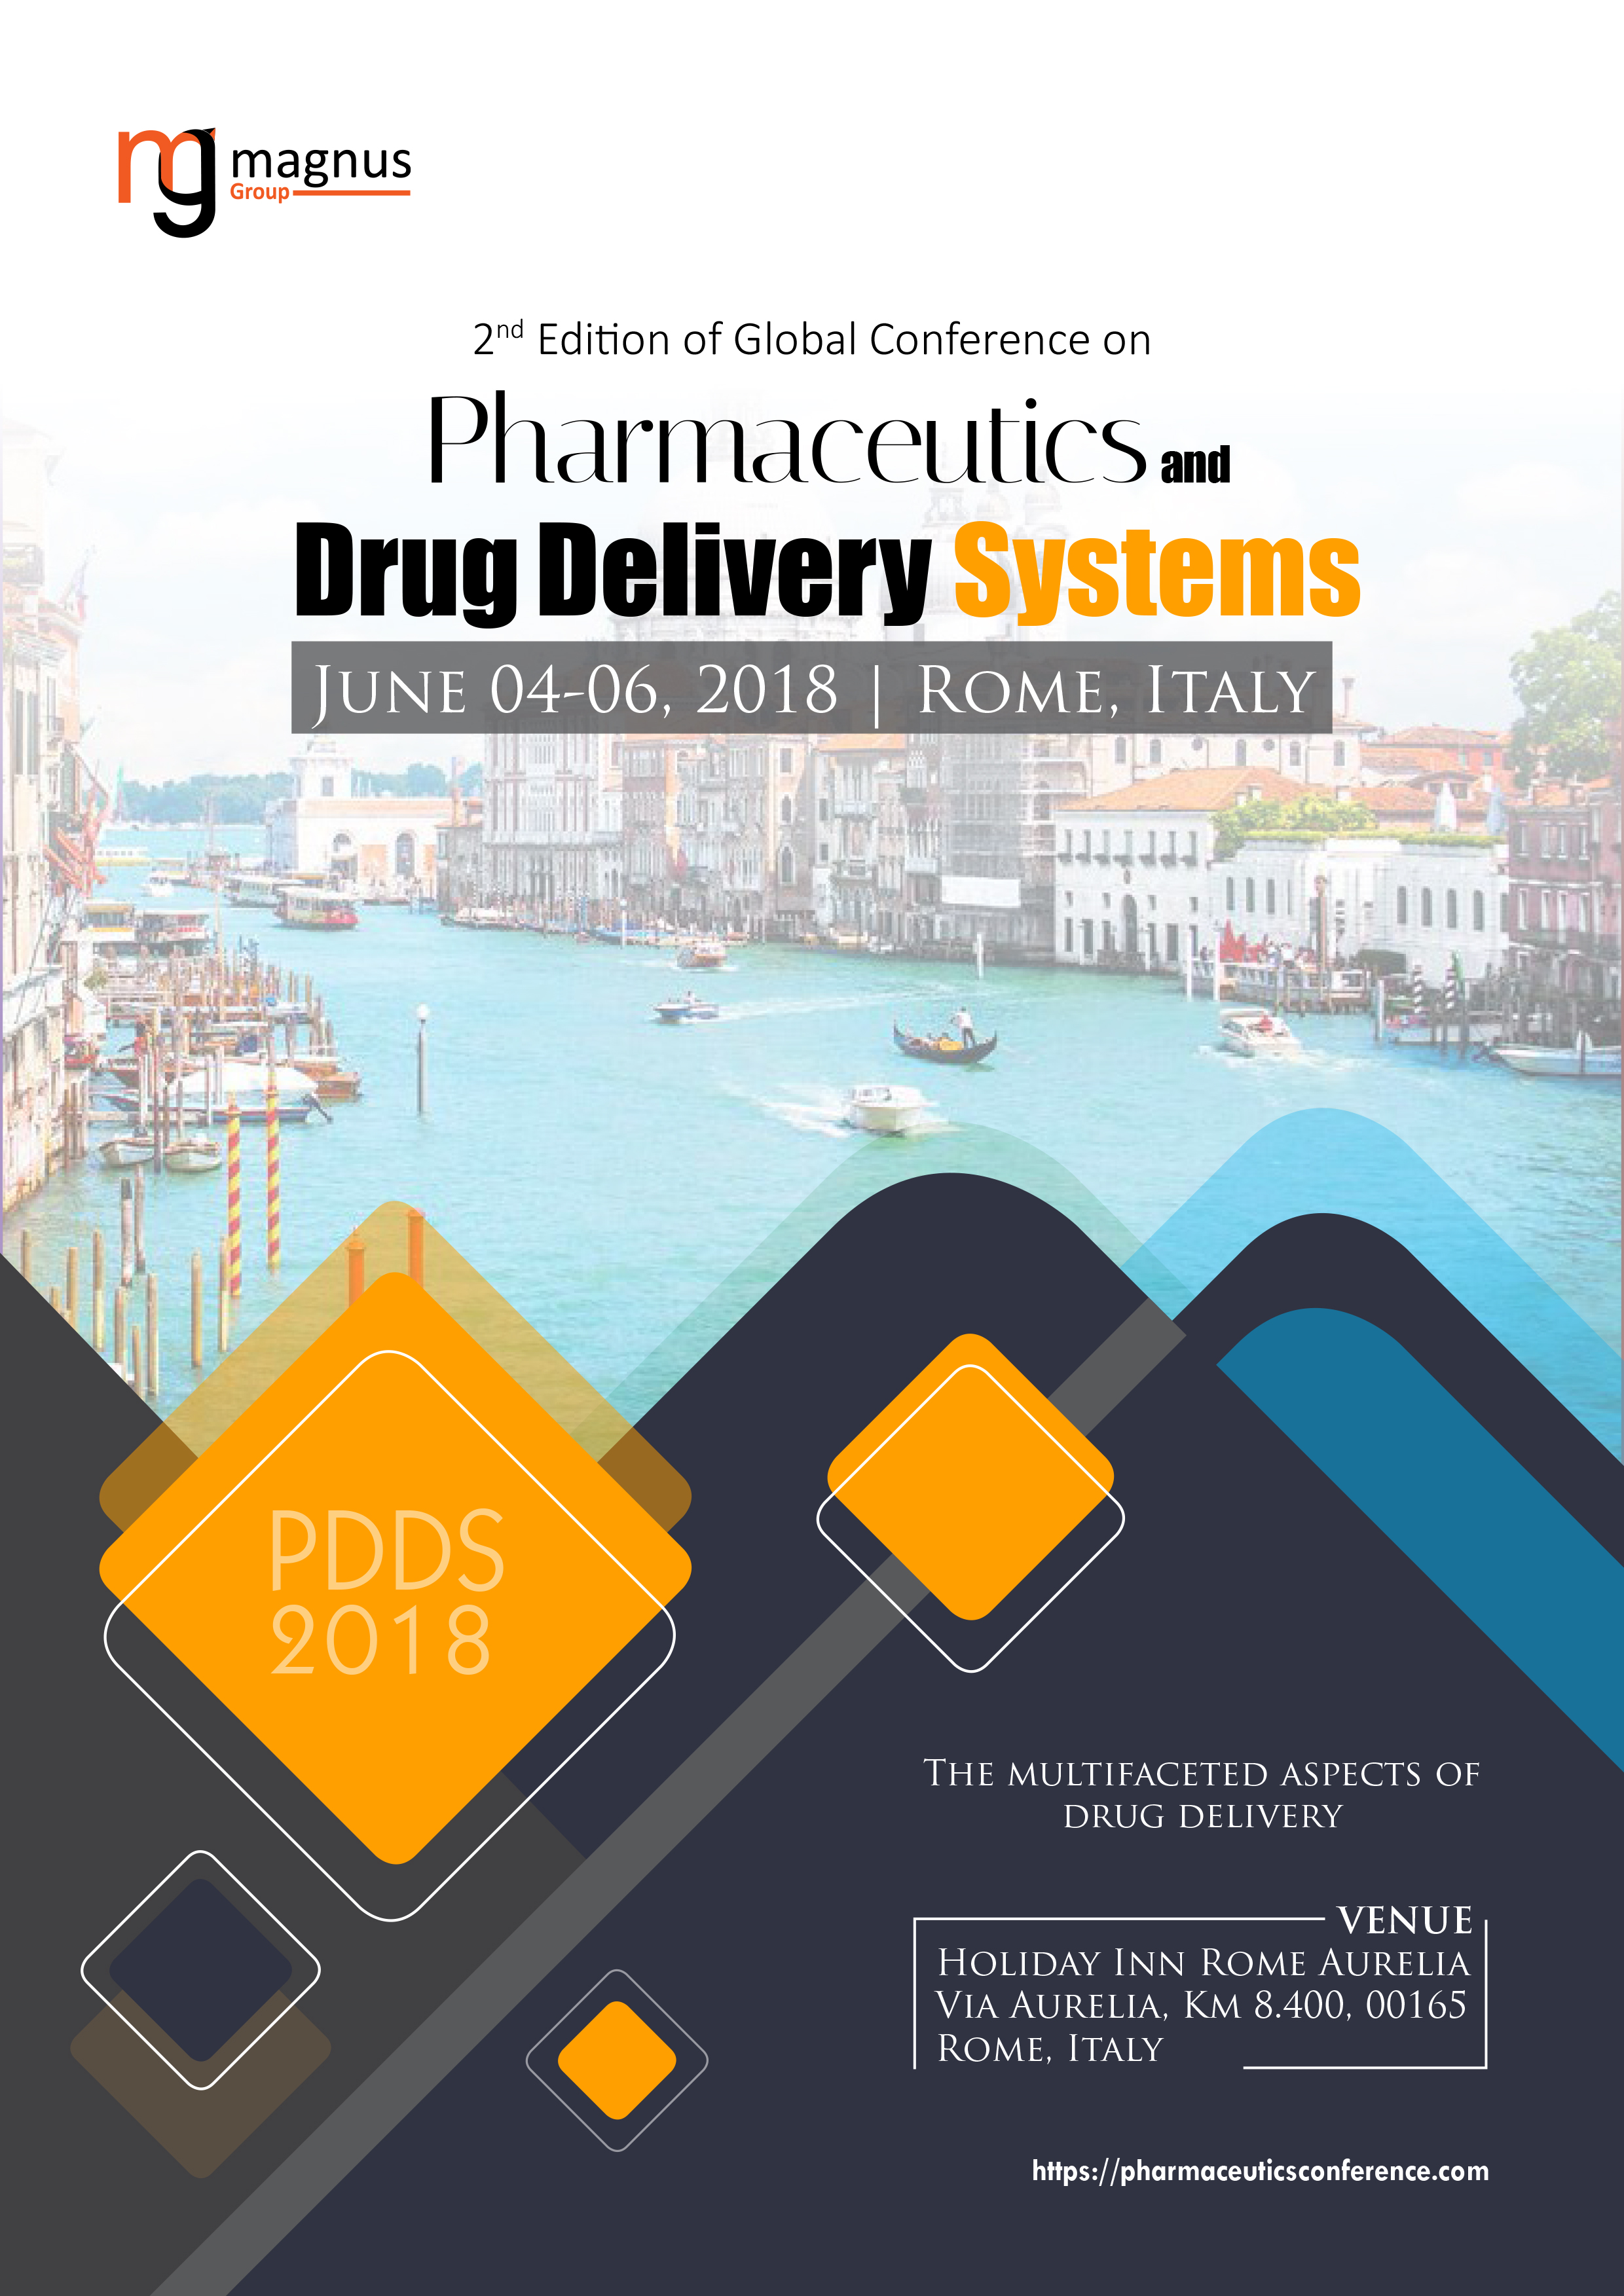 Global Conference on Pharmaceutics and Drug Delivery Systems | Rome, Italy Event Book